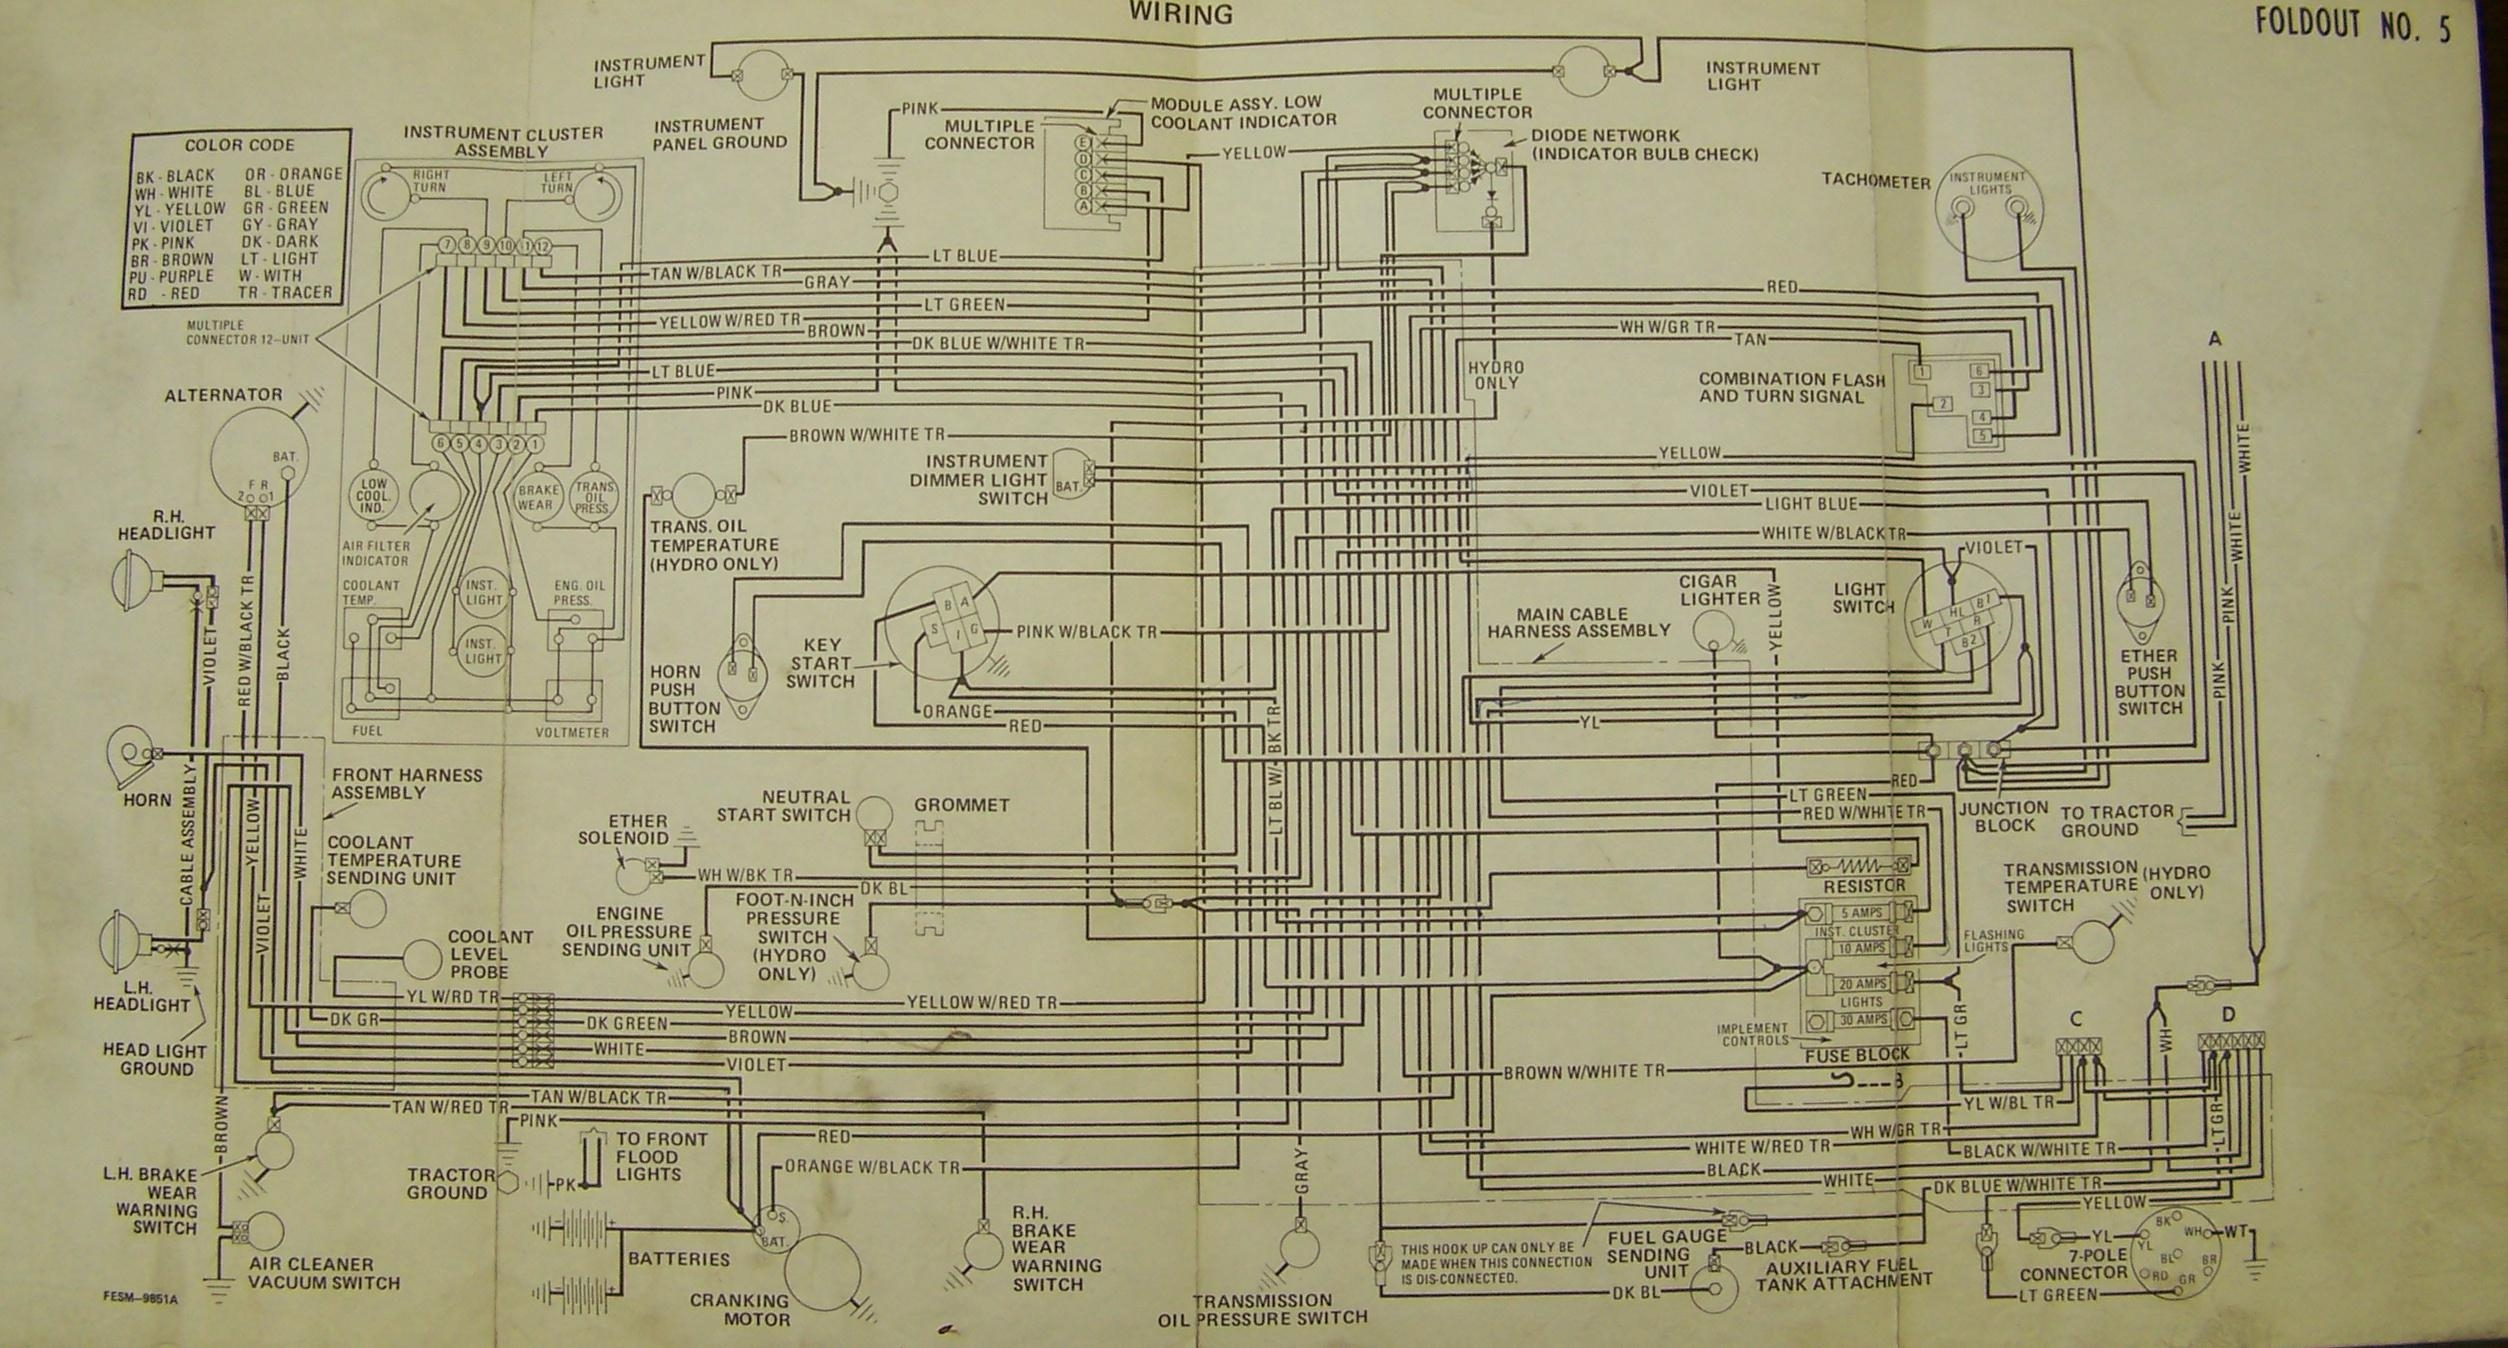 1973 Barracuda Wiring Diagram Free Download Wiring Diagram Schematic